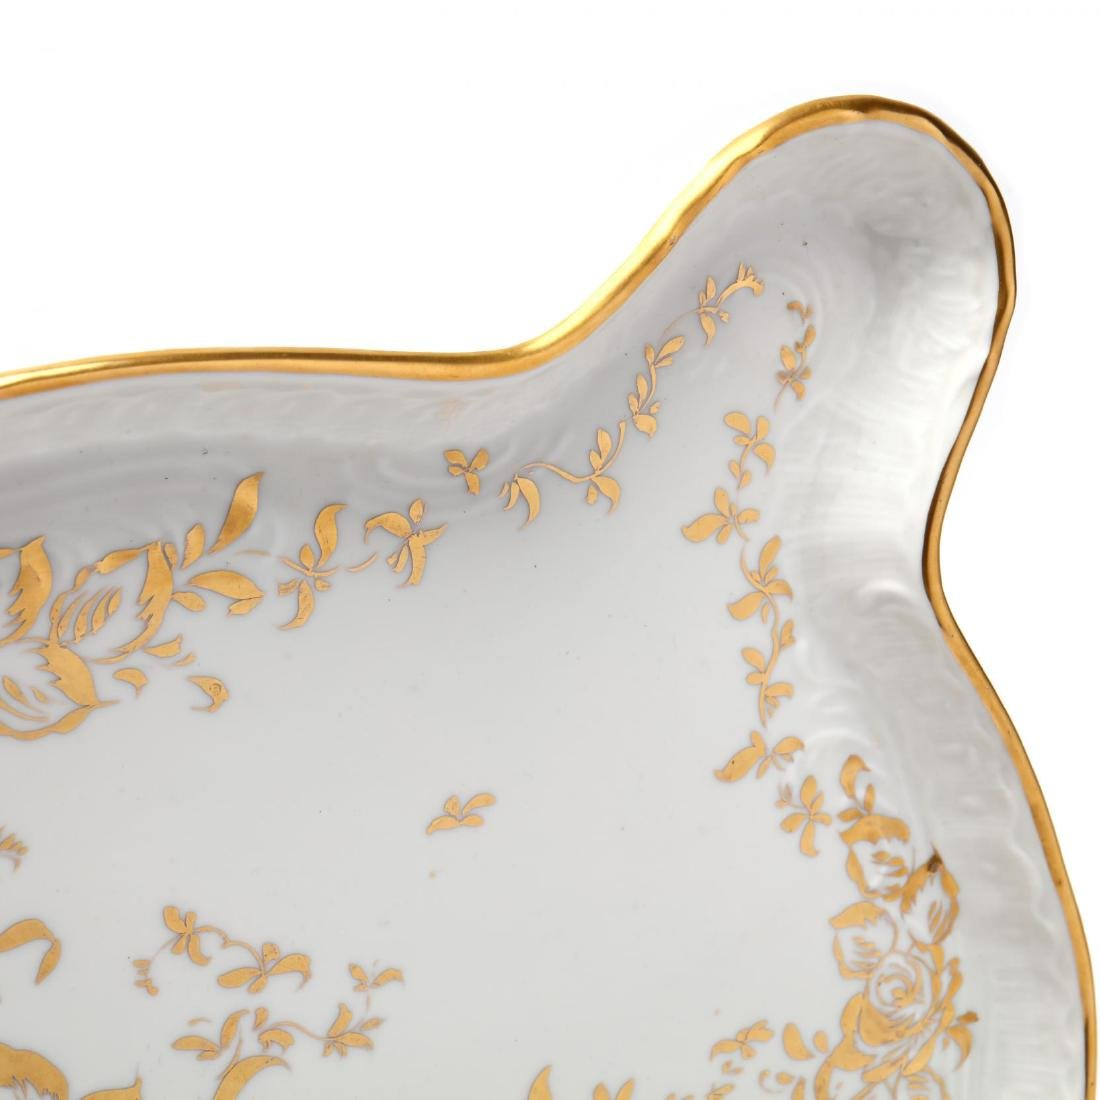 A Large Hand-Painted Vintage Limoges Tray - 4